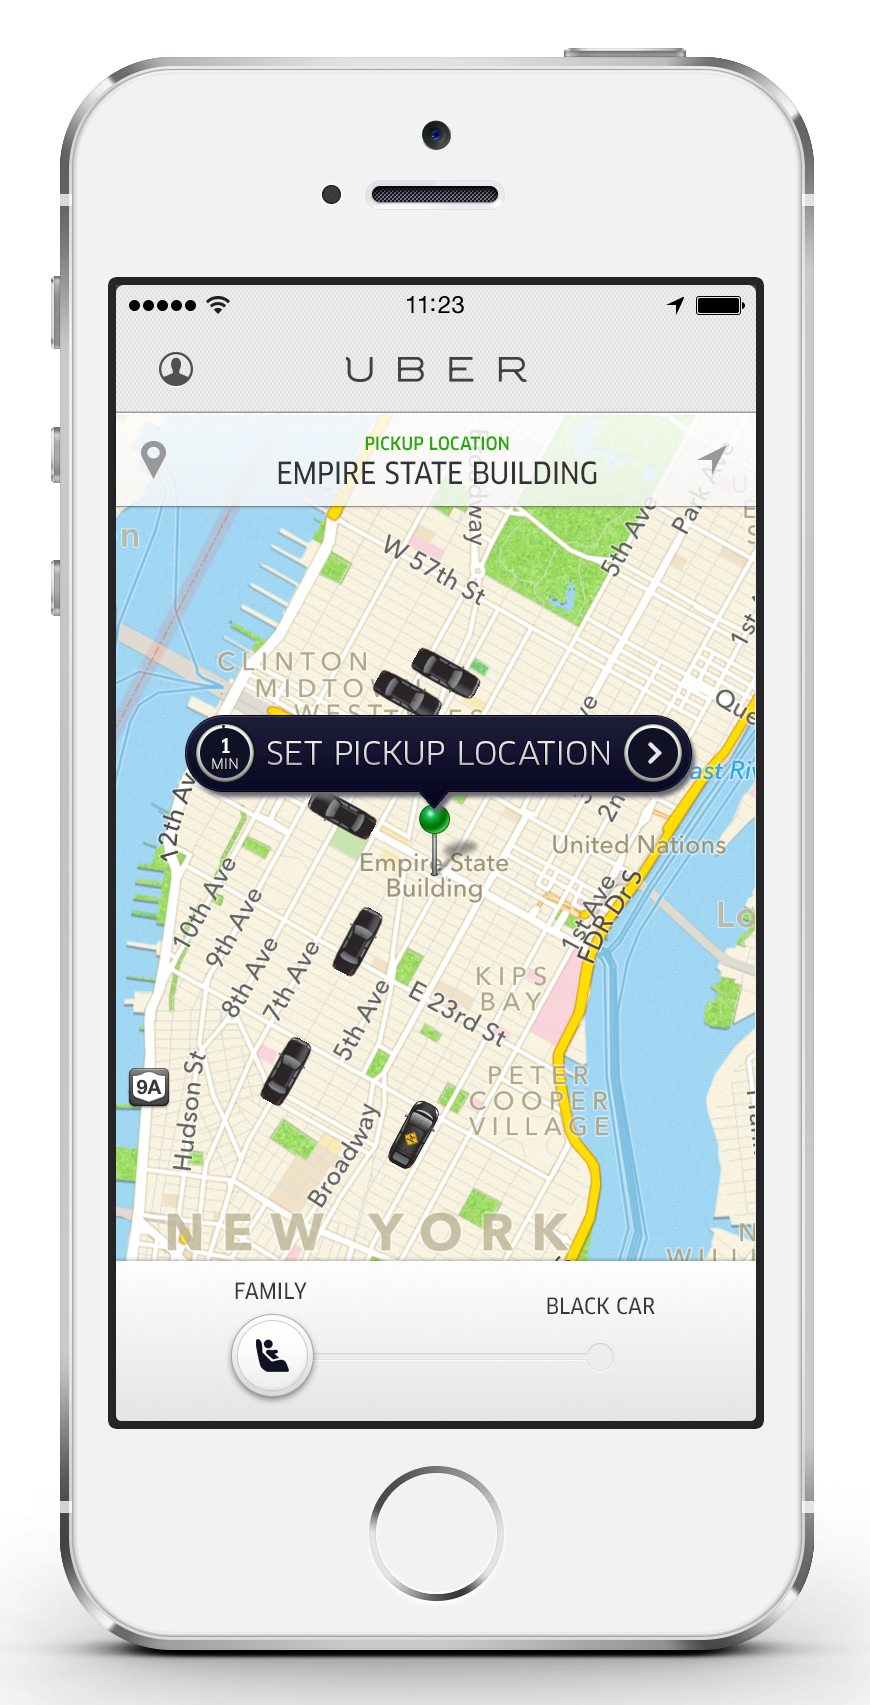 Uber Launches UberFAMILY, A Pilot Service In NYC That Uses